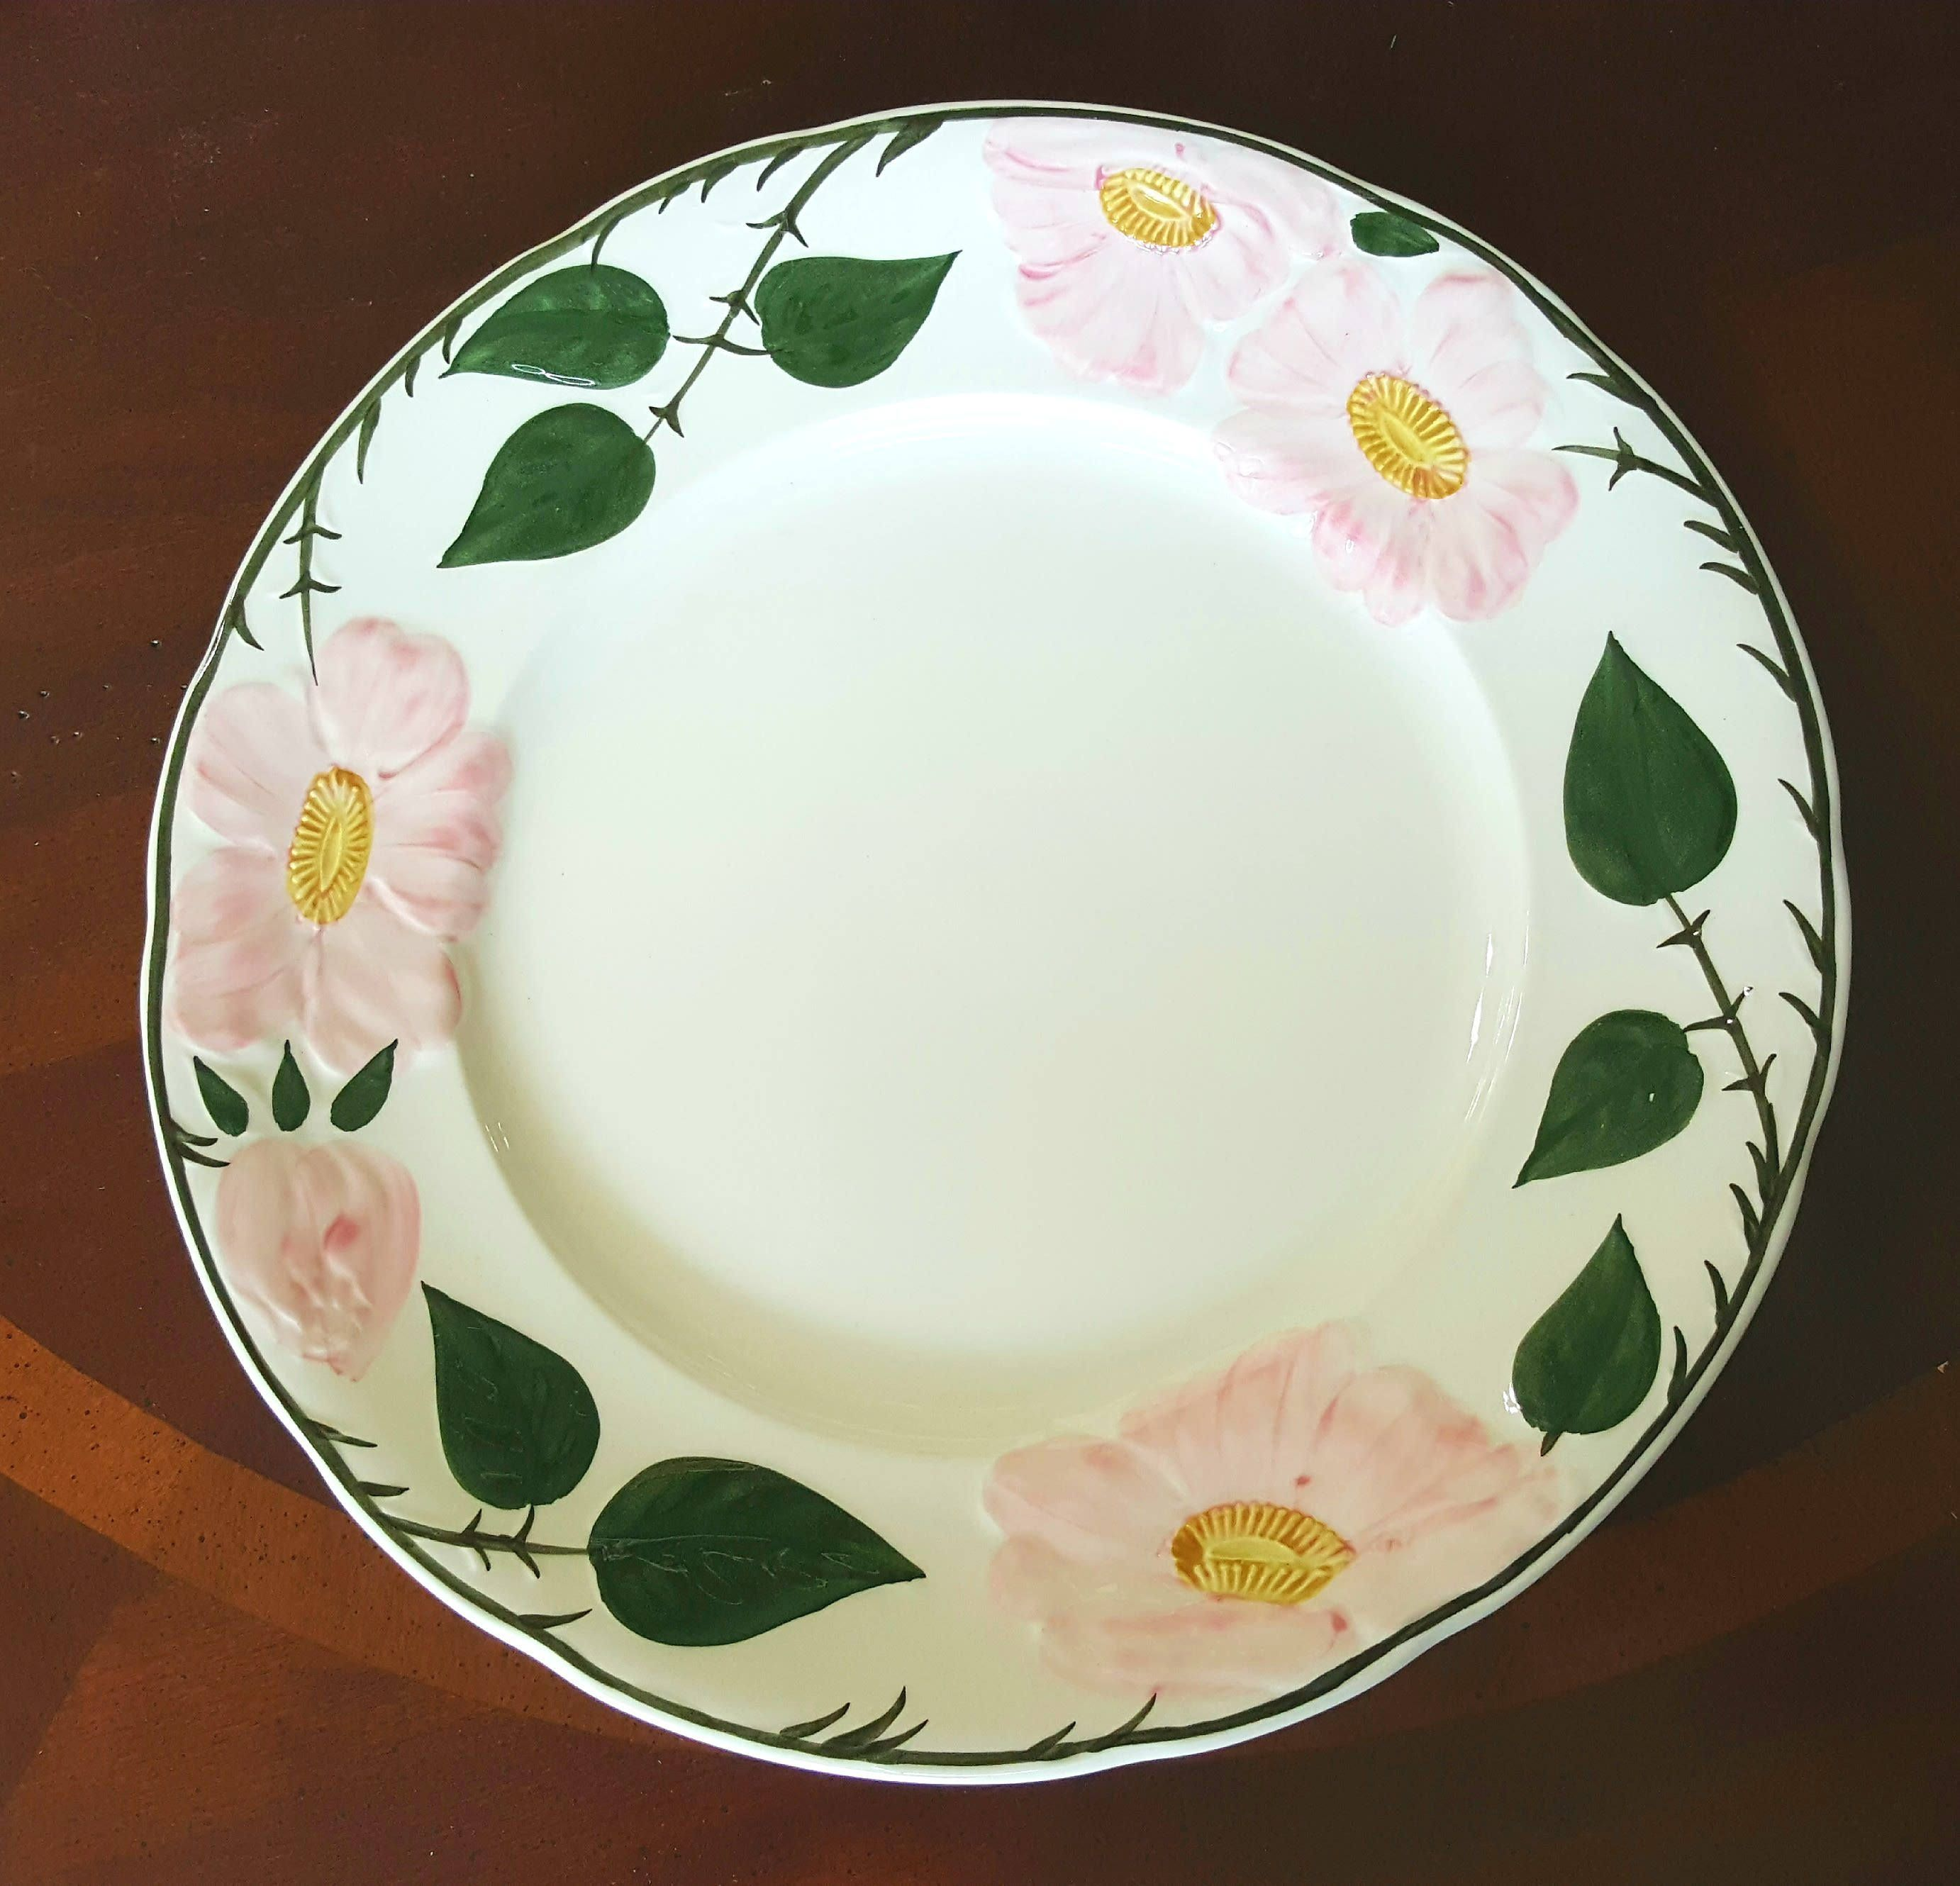 Villeroy Boch Dinner Plate Vintage China Set Wild Rose Collection Classy Tea China Wedding Gifts Replacement China Tableware China With Images Villeroy Boch Dinner Plates